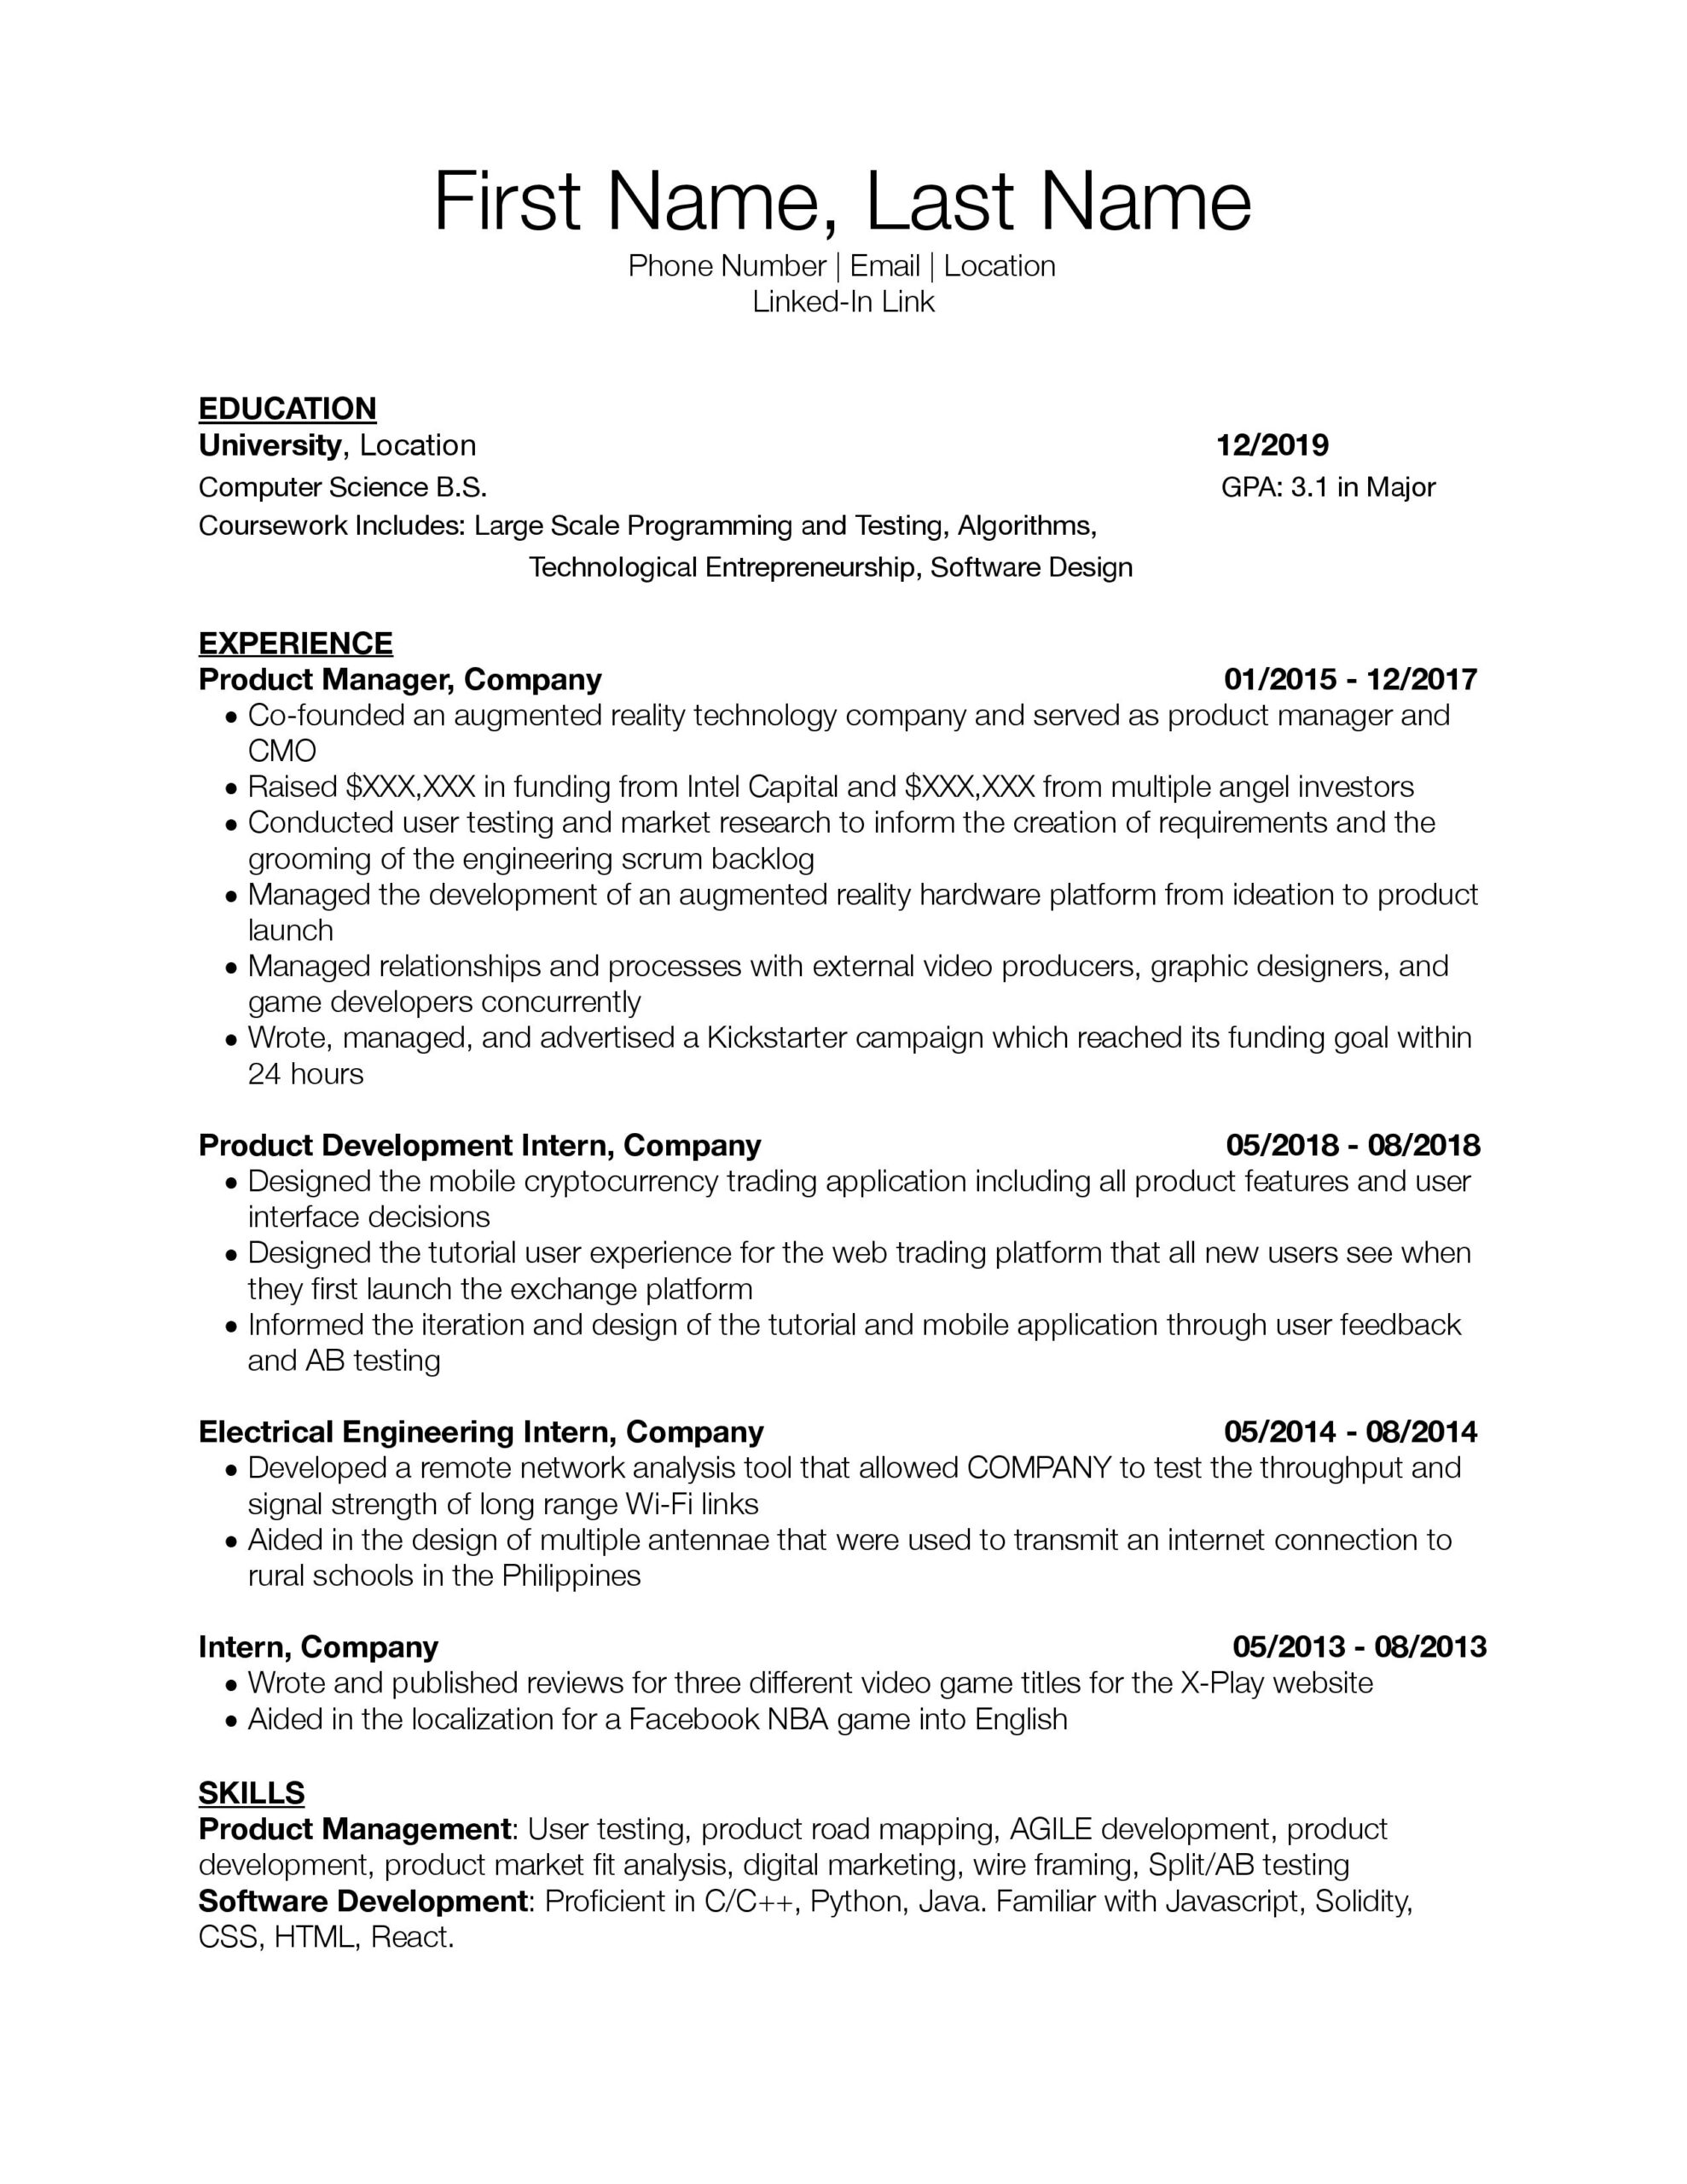 need resume critique for associate junior product manager roles would appreciate any Resume Mobile Product Manager Resume